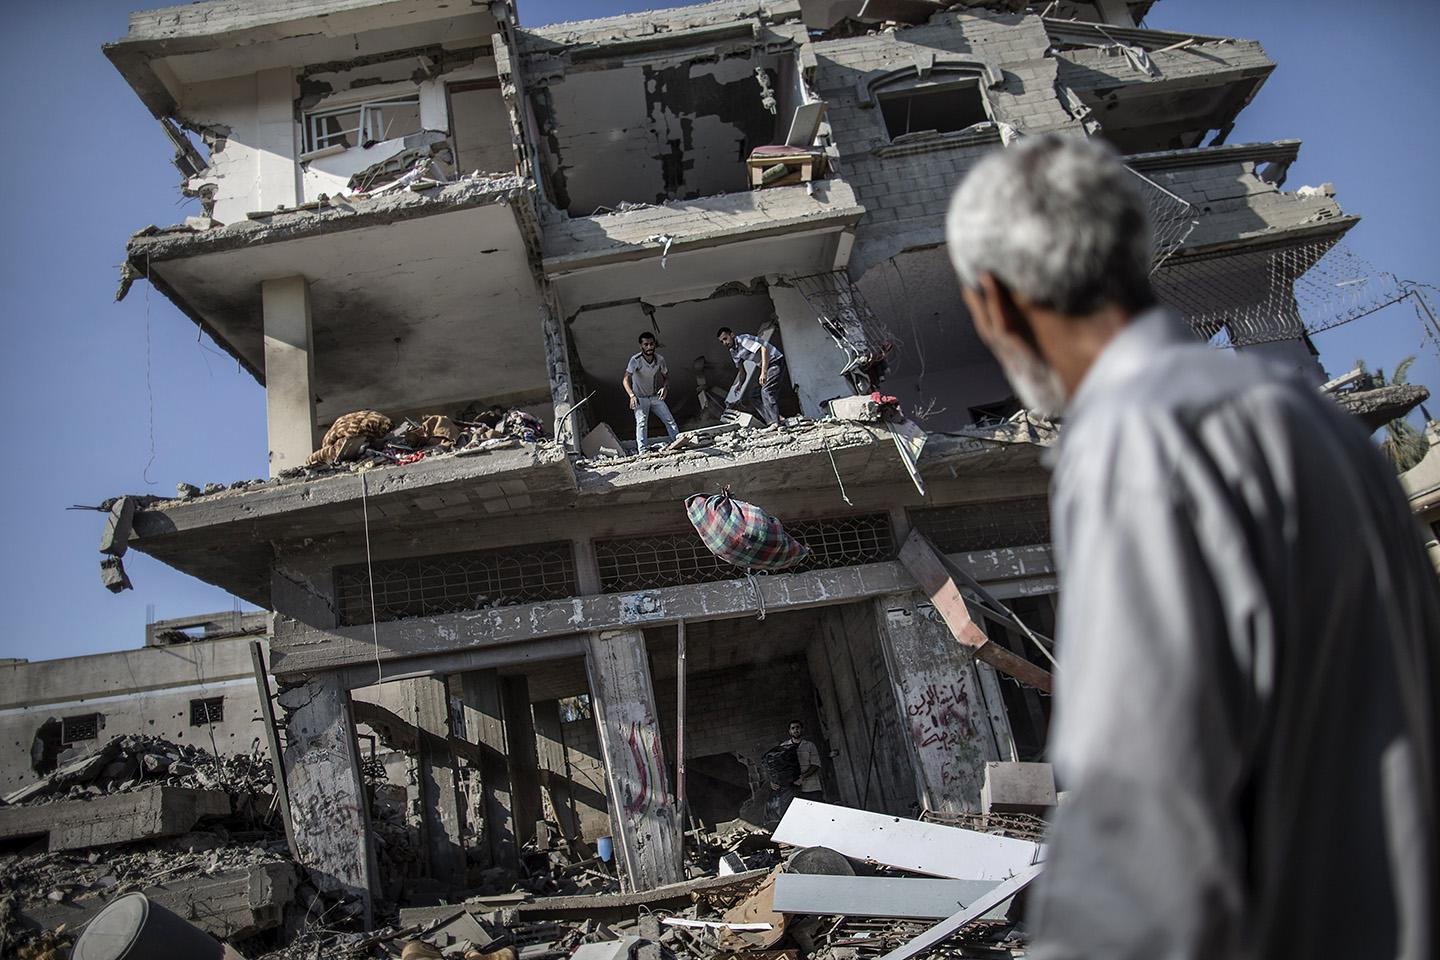 Gaza City as families returned to find their homes ground into rubble by relentless Israeli tank fire and air strikes.